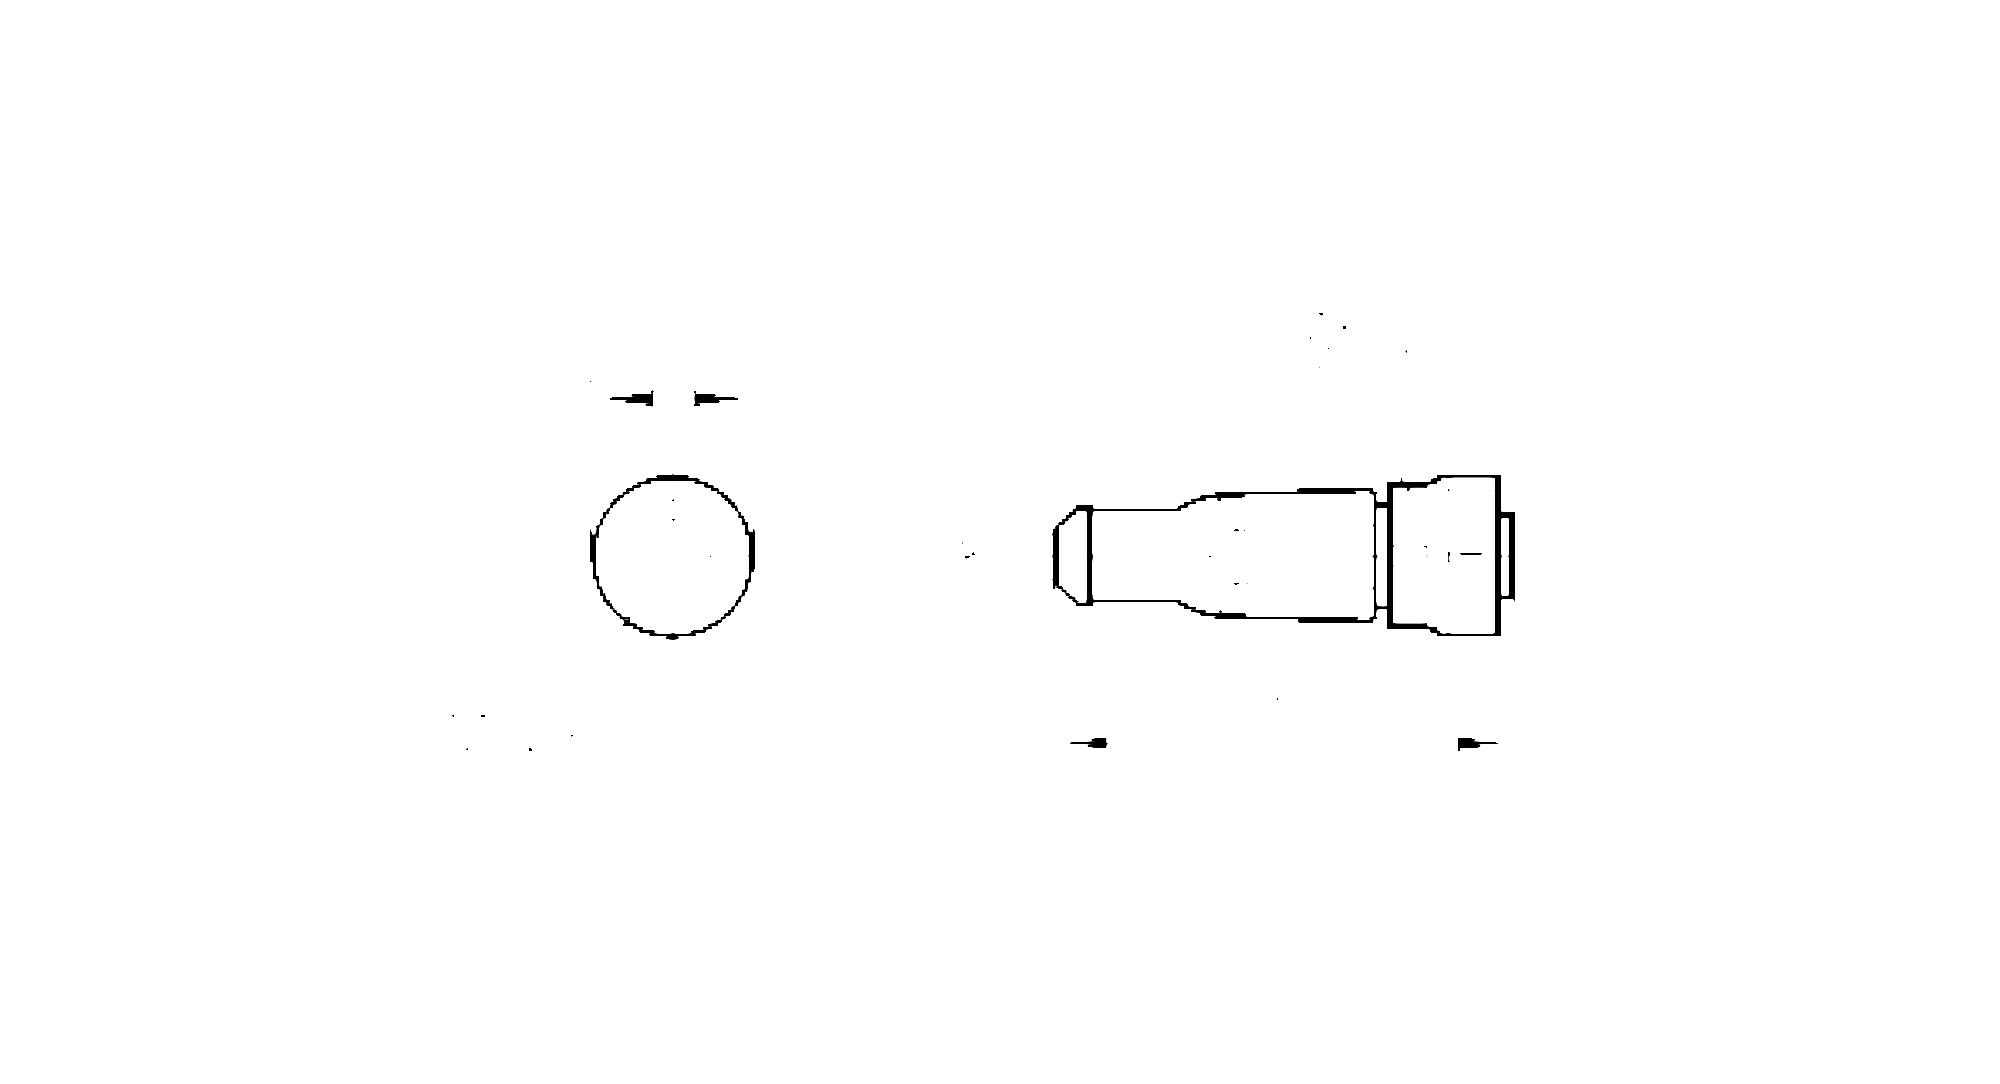 evc002 - connecting cable with socket